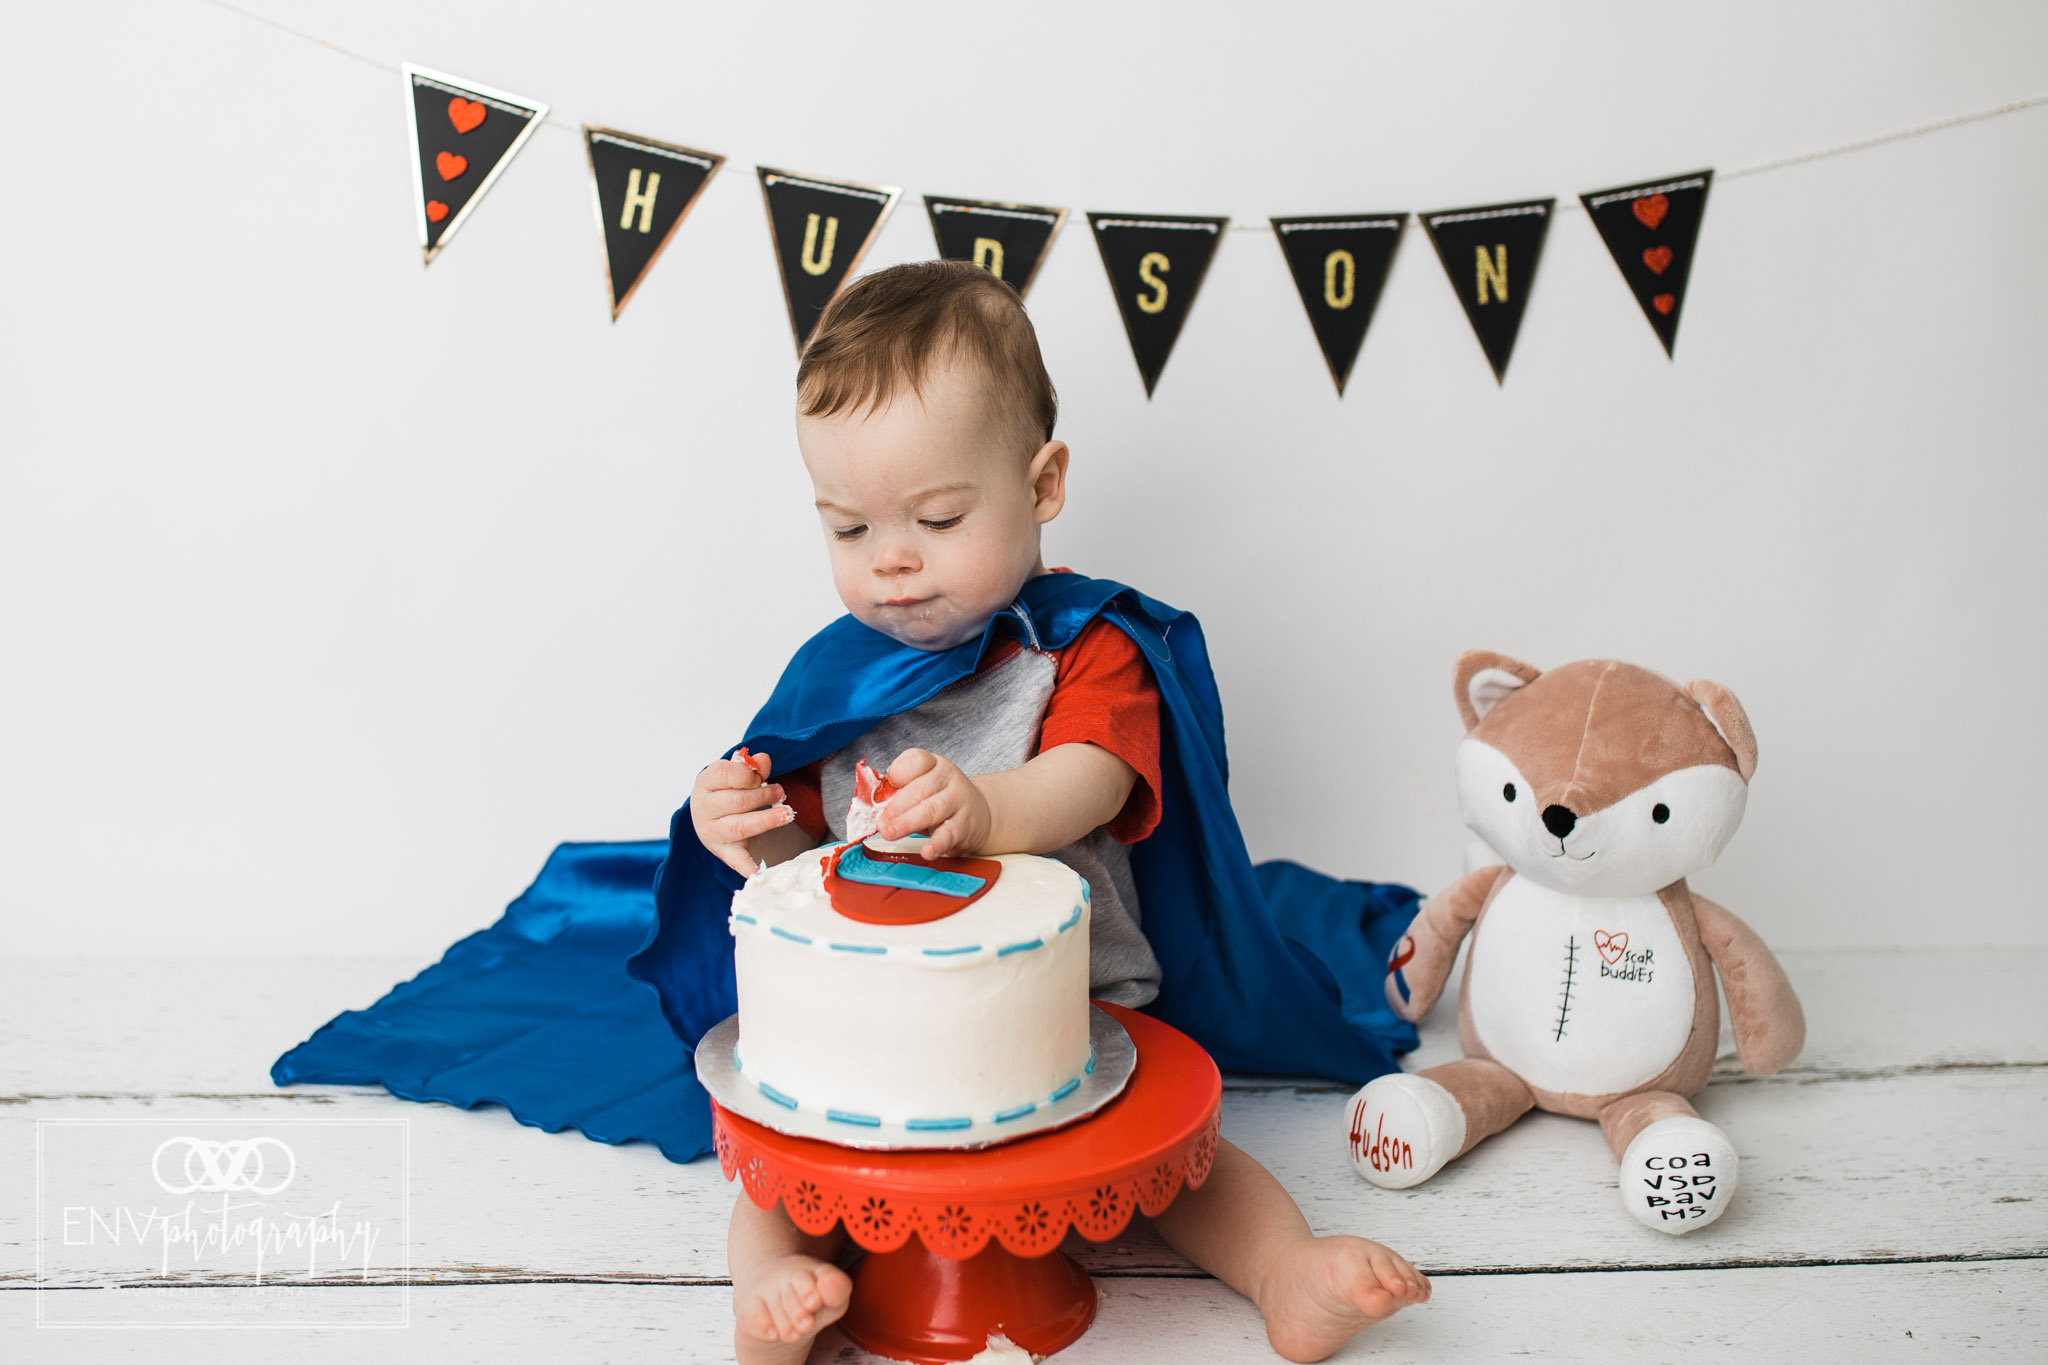 Mount Vernon Columbus Ohio Family Photographer First Birthday Cake Smash (19).jpg